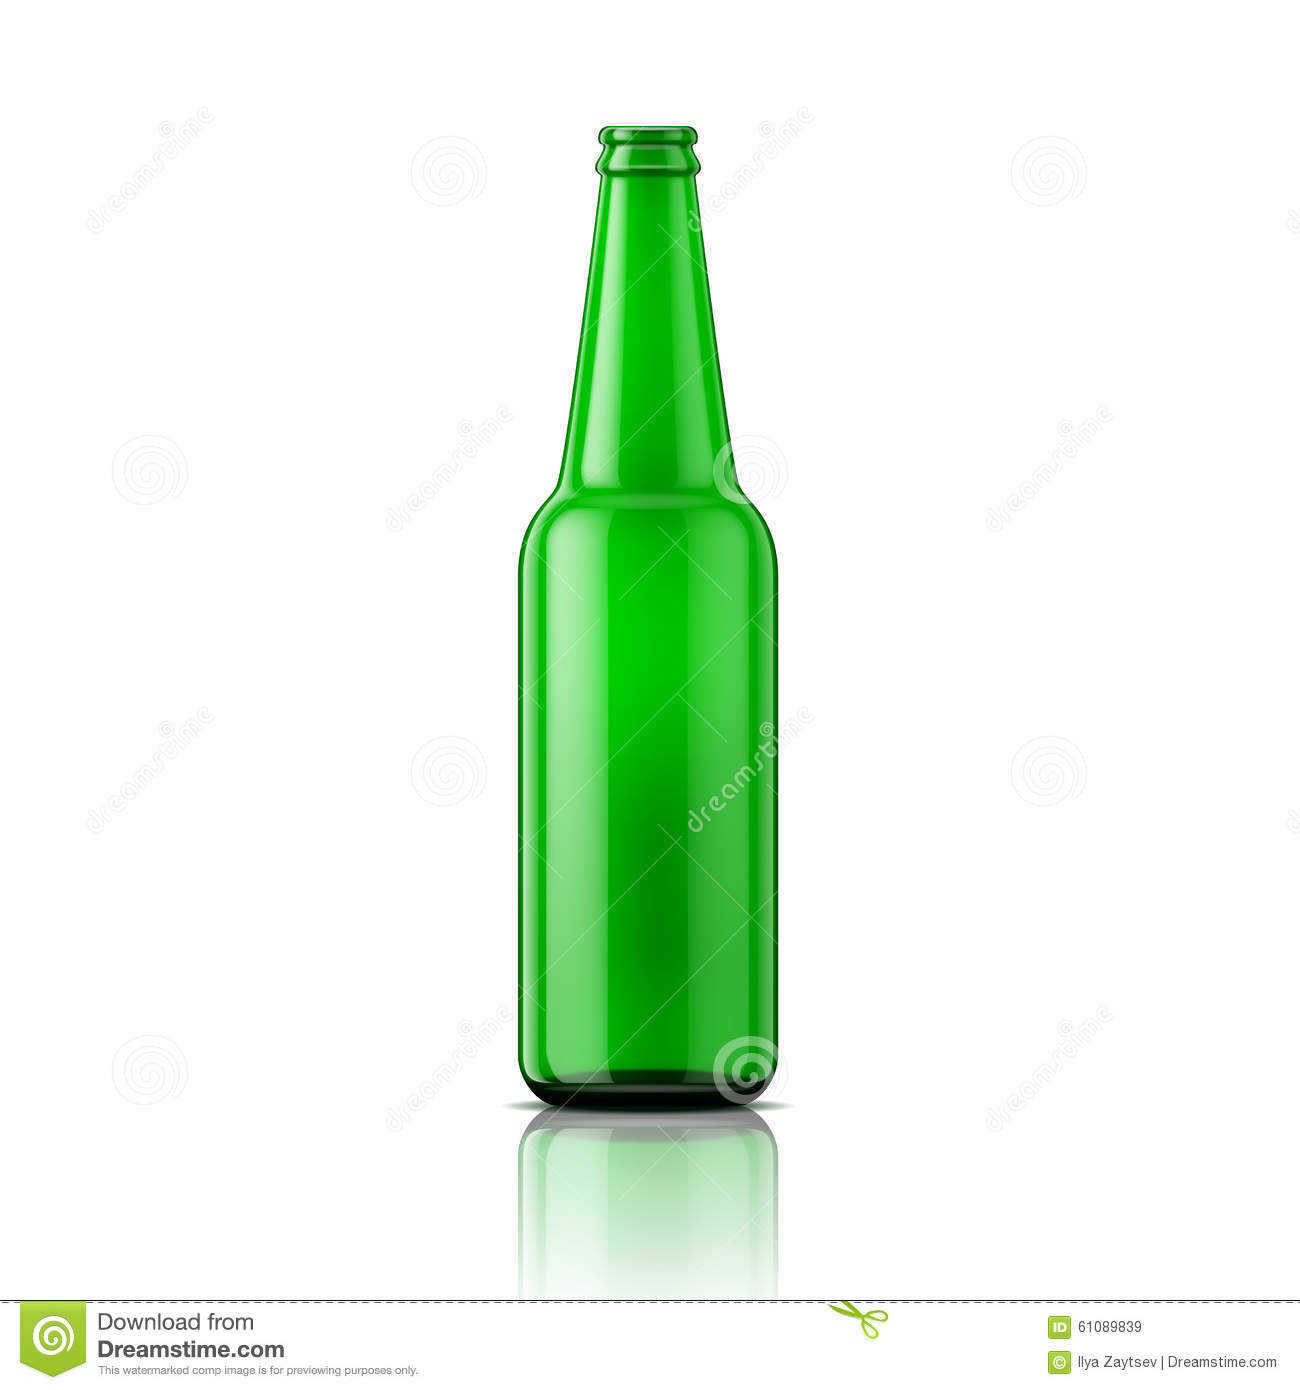 green beer bottle without cap stock vector illustration of opened